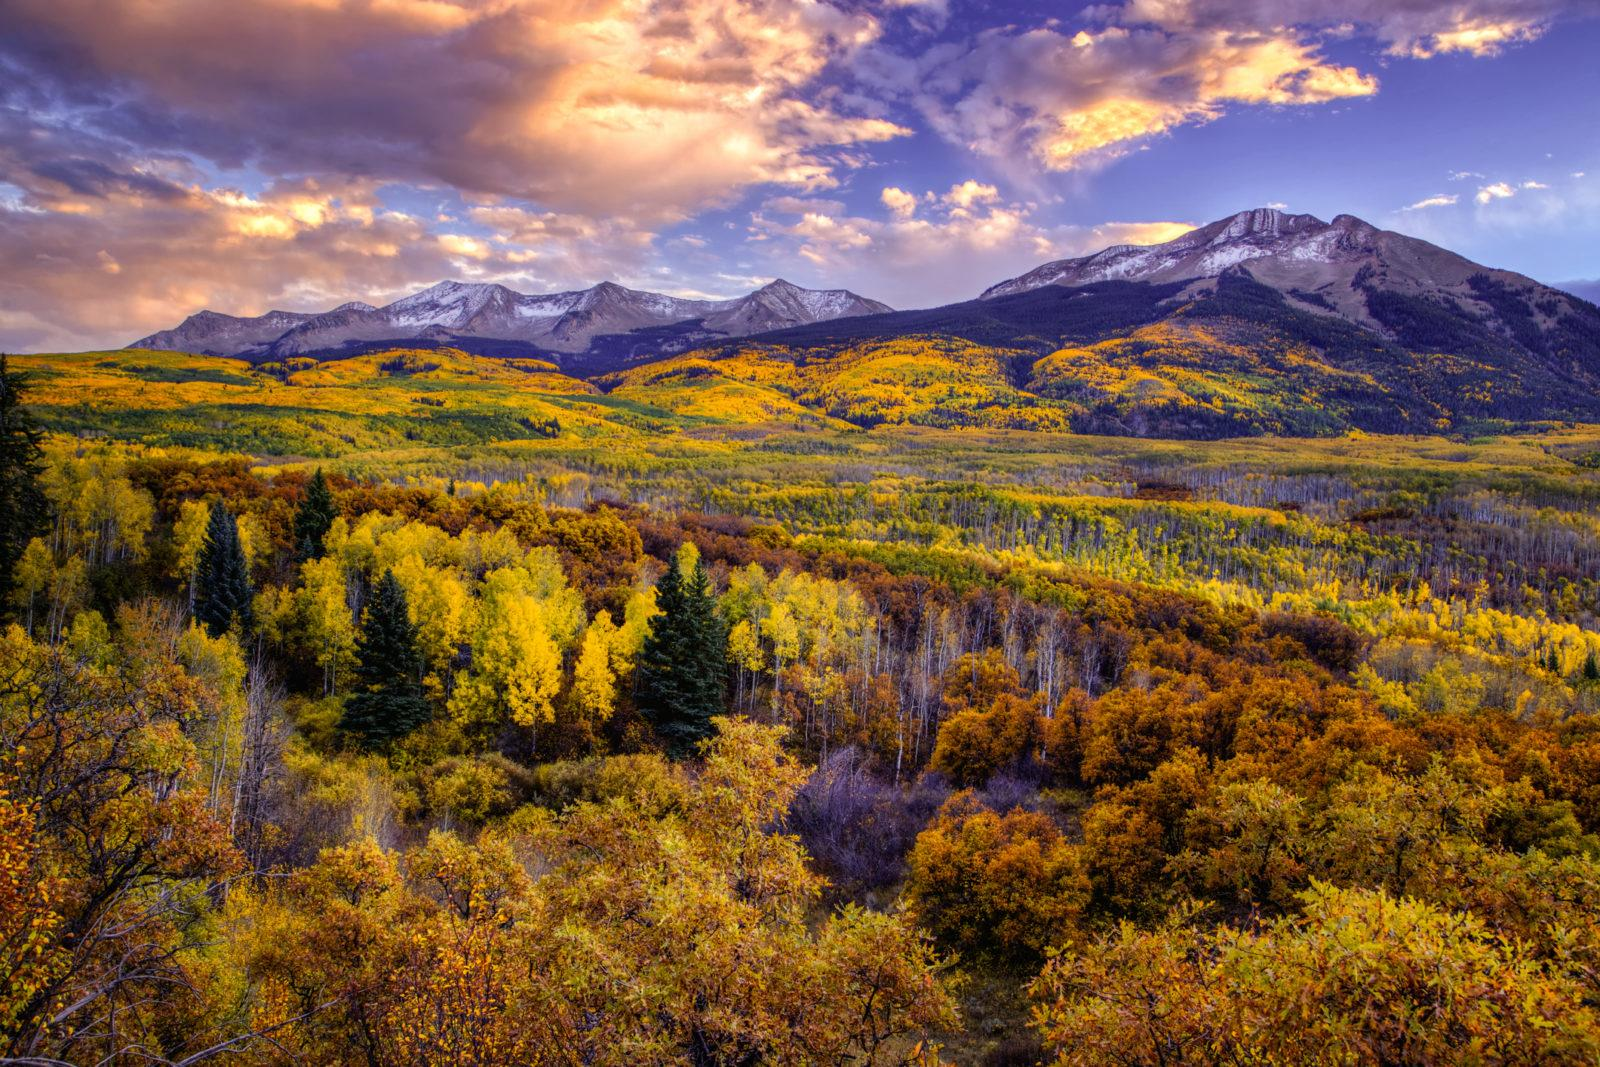 Today's Photo Of The Day is Fall Symphony by Wendy Gedack. Location: Crested Butte, Colorado.